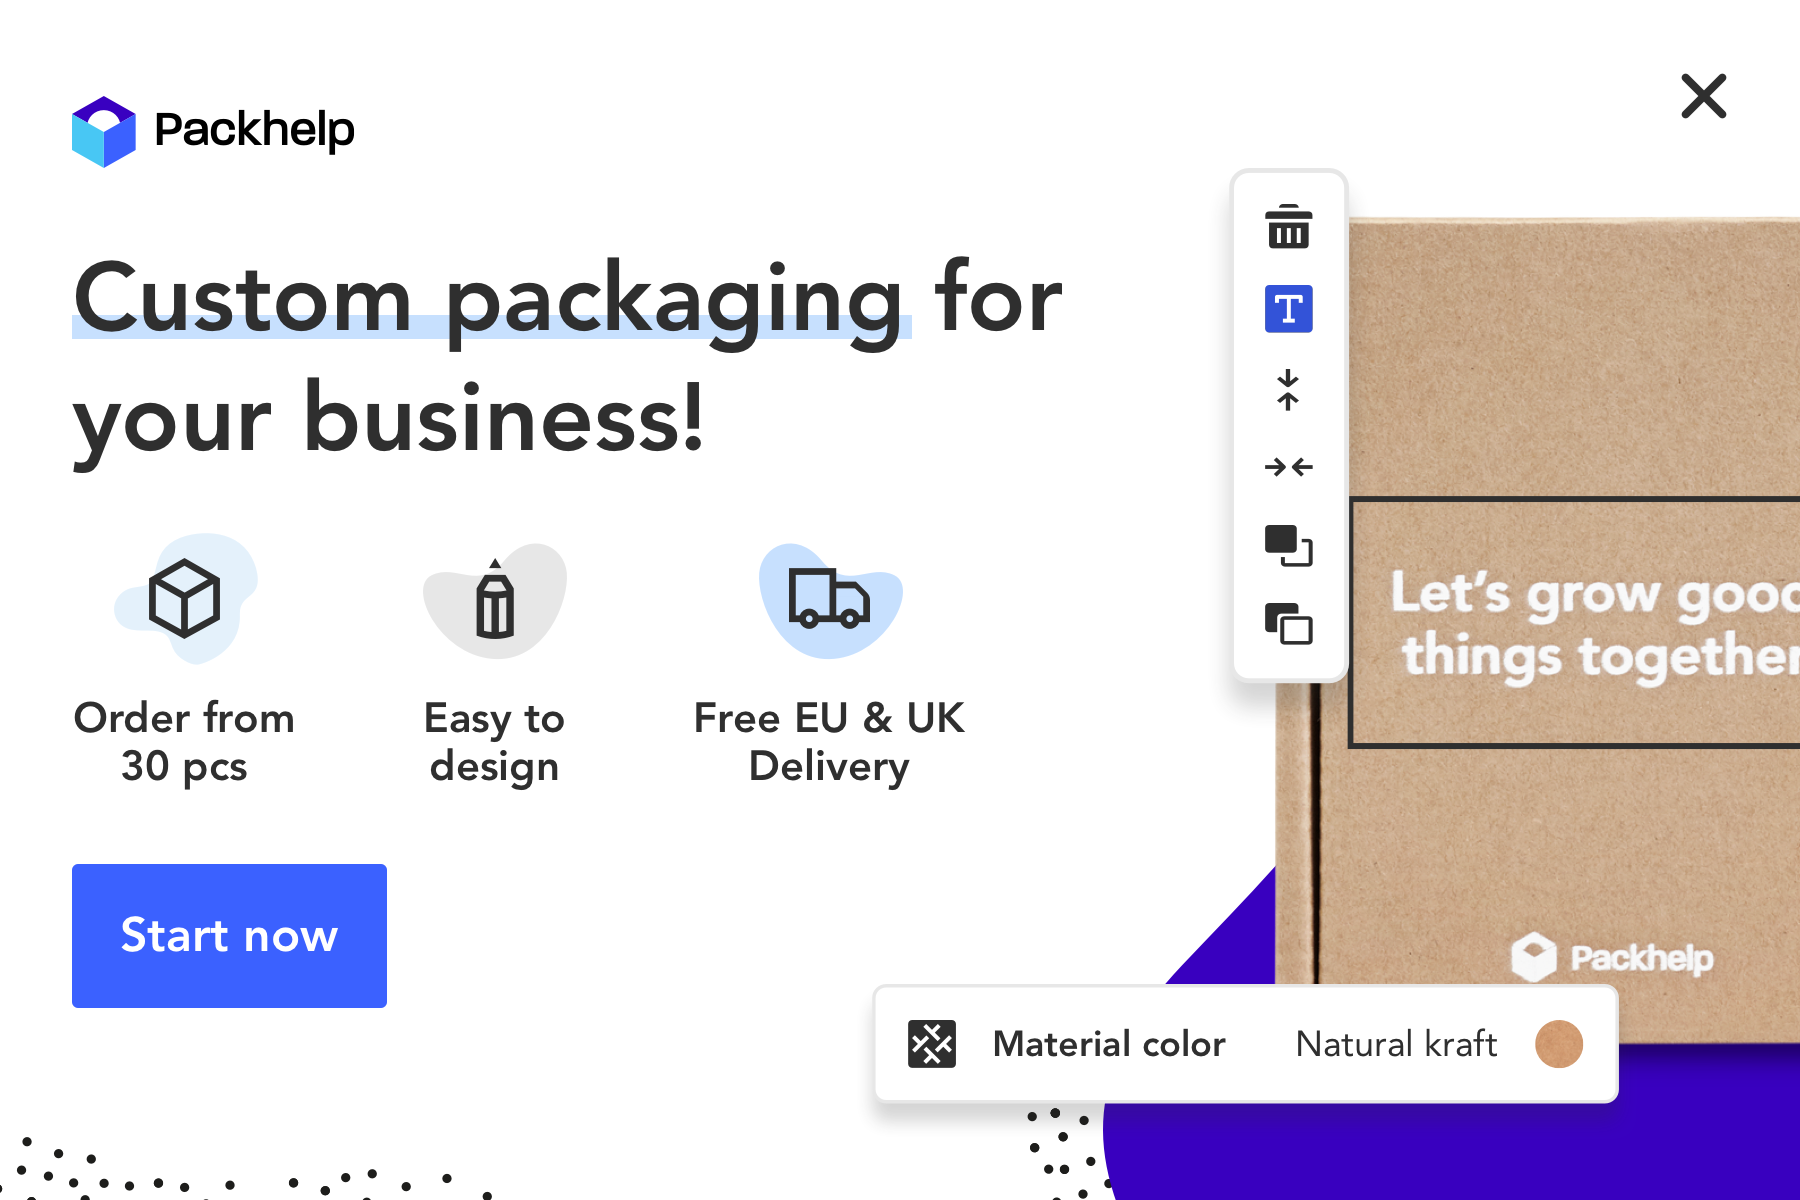 Packhelp is an online marketplace for custom branded packaging. We provide innovative packaging solutions for e-commerce brands, retailers, agencies and enterprises.